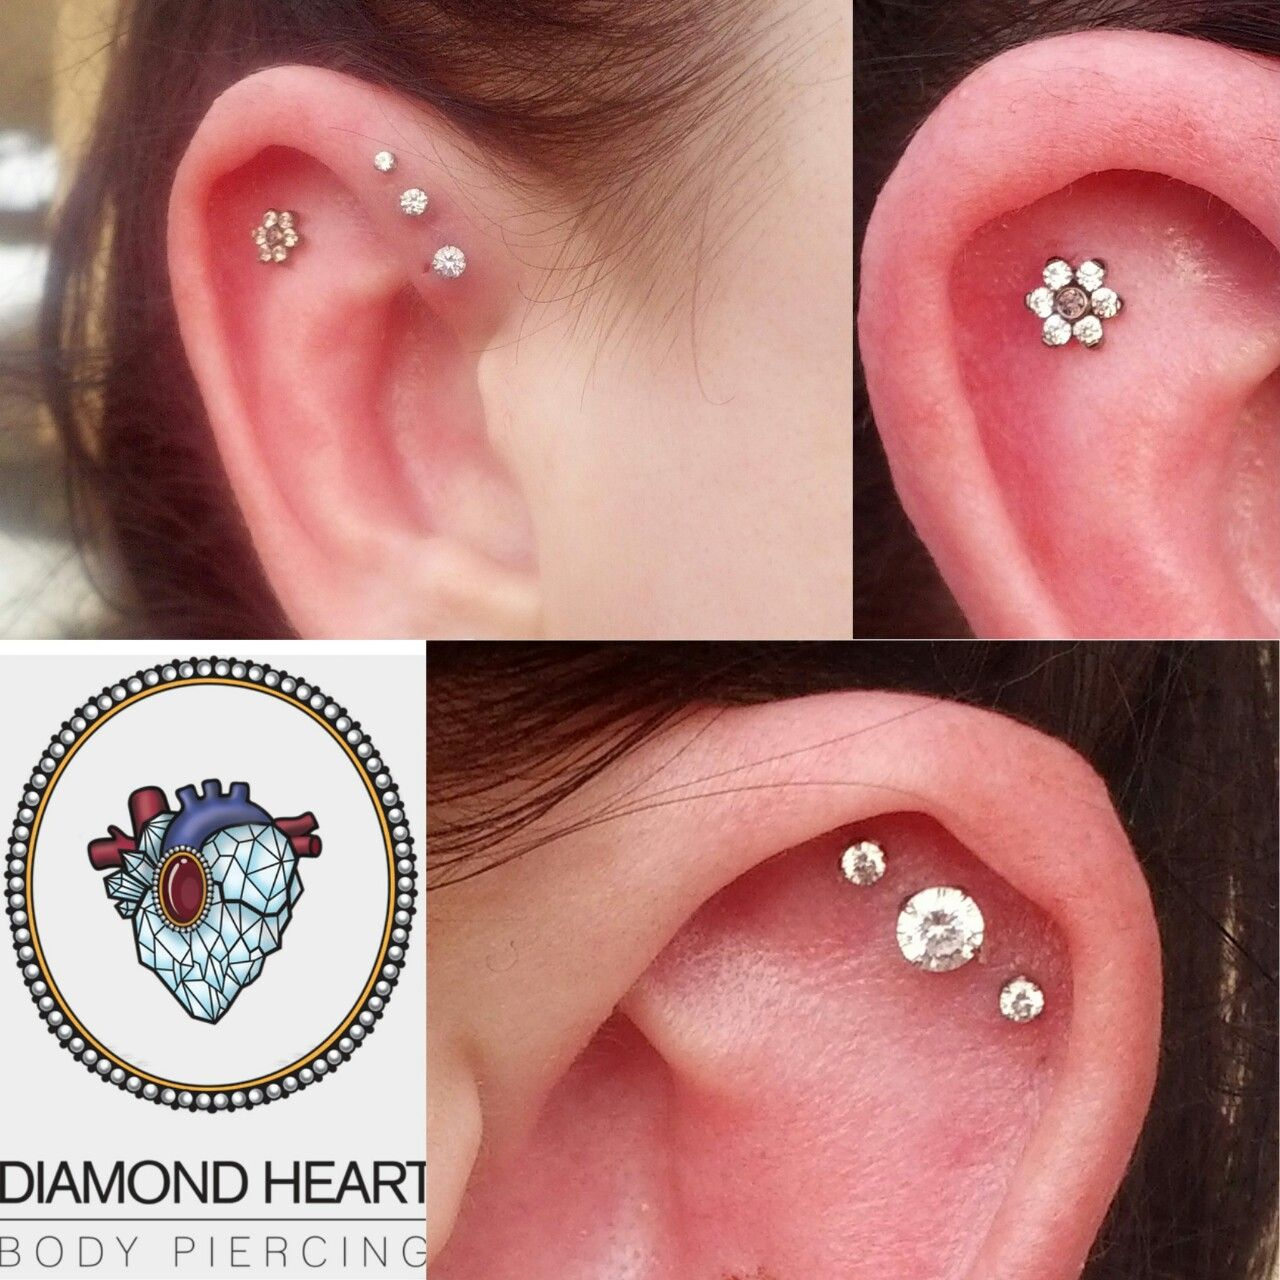 3mm nose piercing  Fresh helix with ANATOMETAL flower and healing triple forward helix